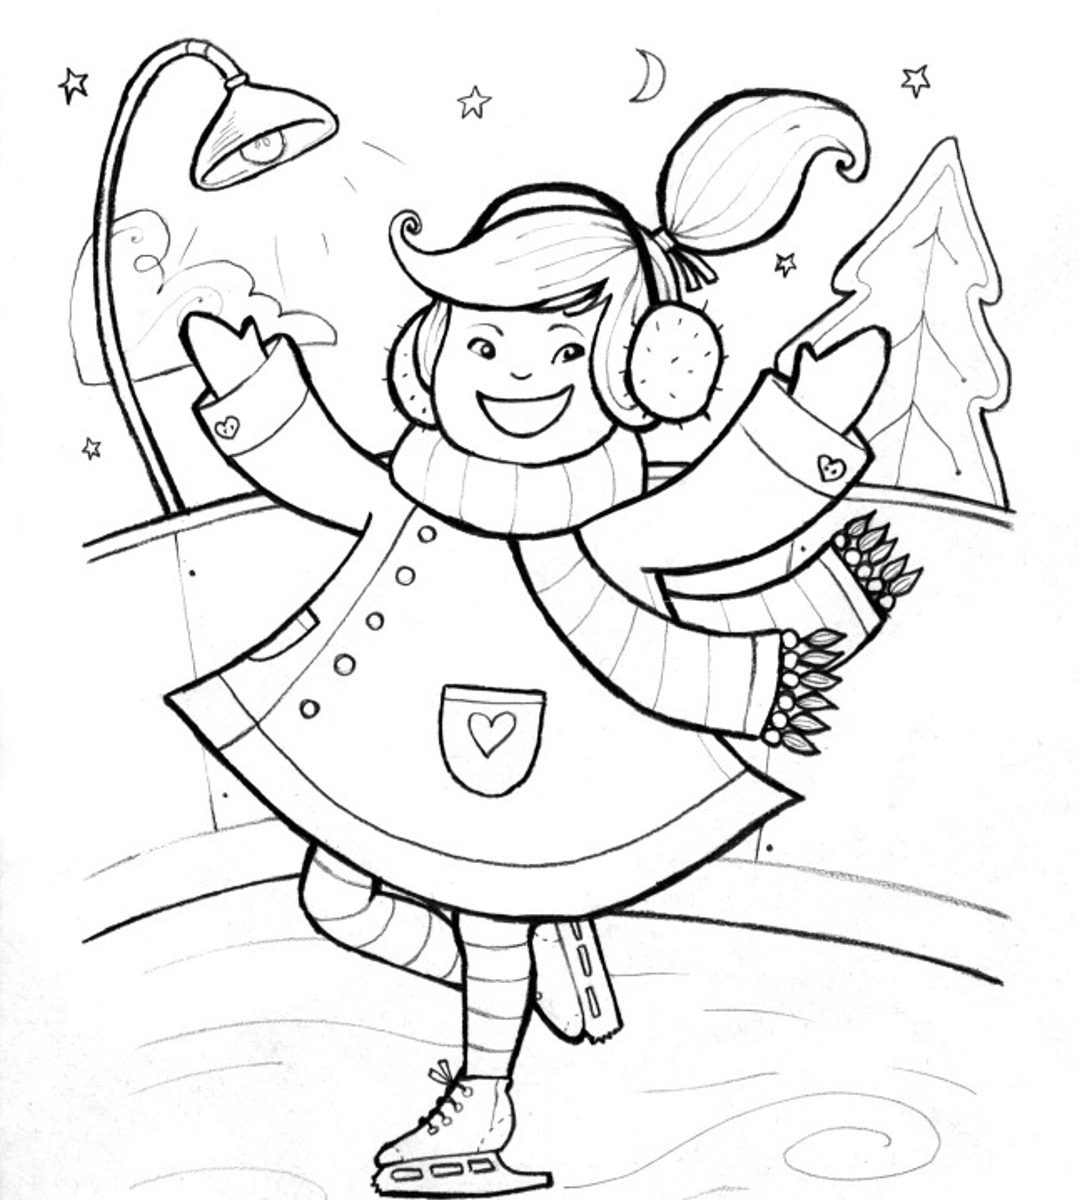 1079x1200 Ice Skating Coloring Pages To Download And Print For Toddler Free